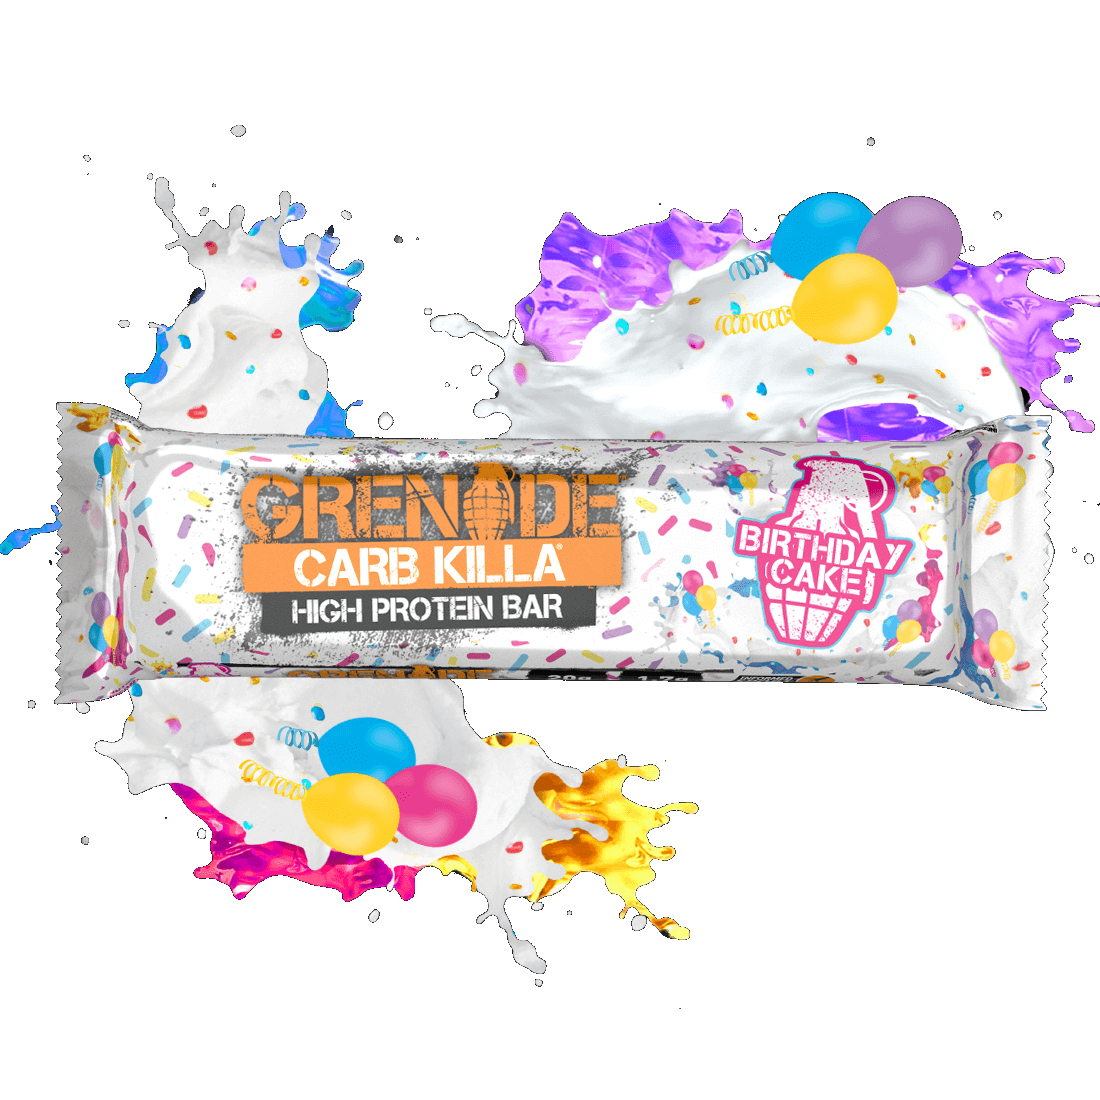 Enjoyable Calories In Grenade Carb Killa High Protein Bar Birthday Cake Personalised Birthday Cards Paralily Jamesorg